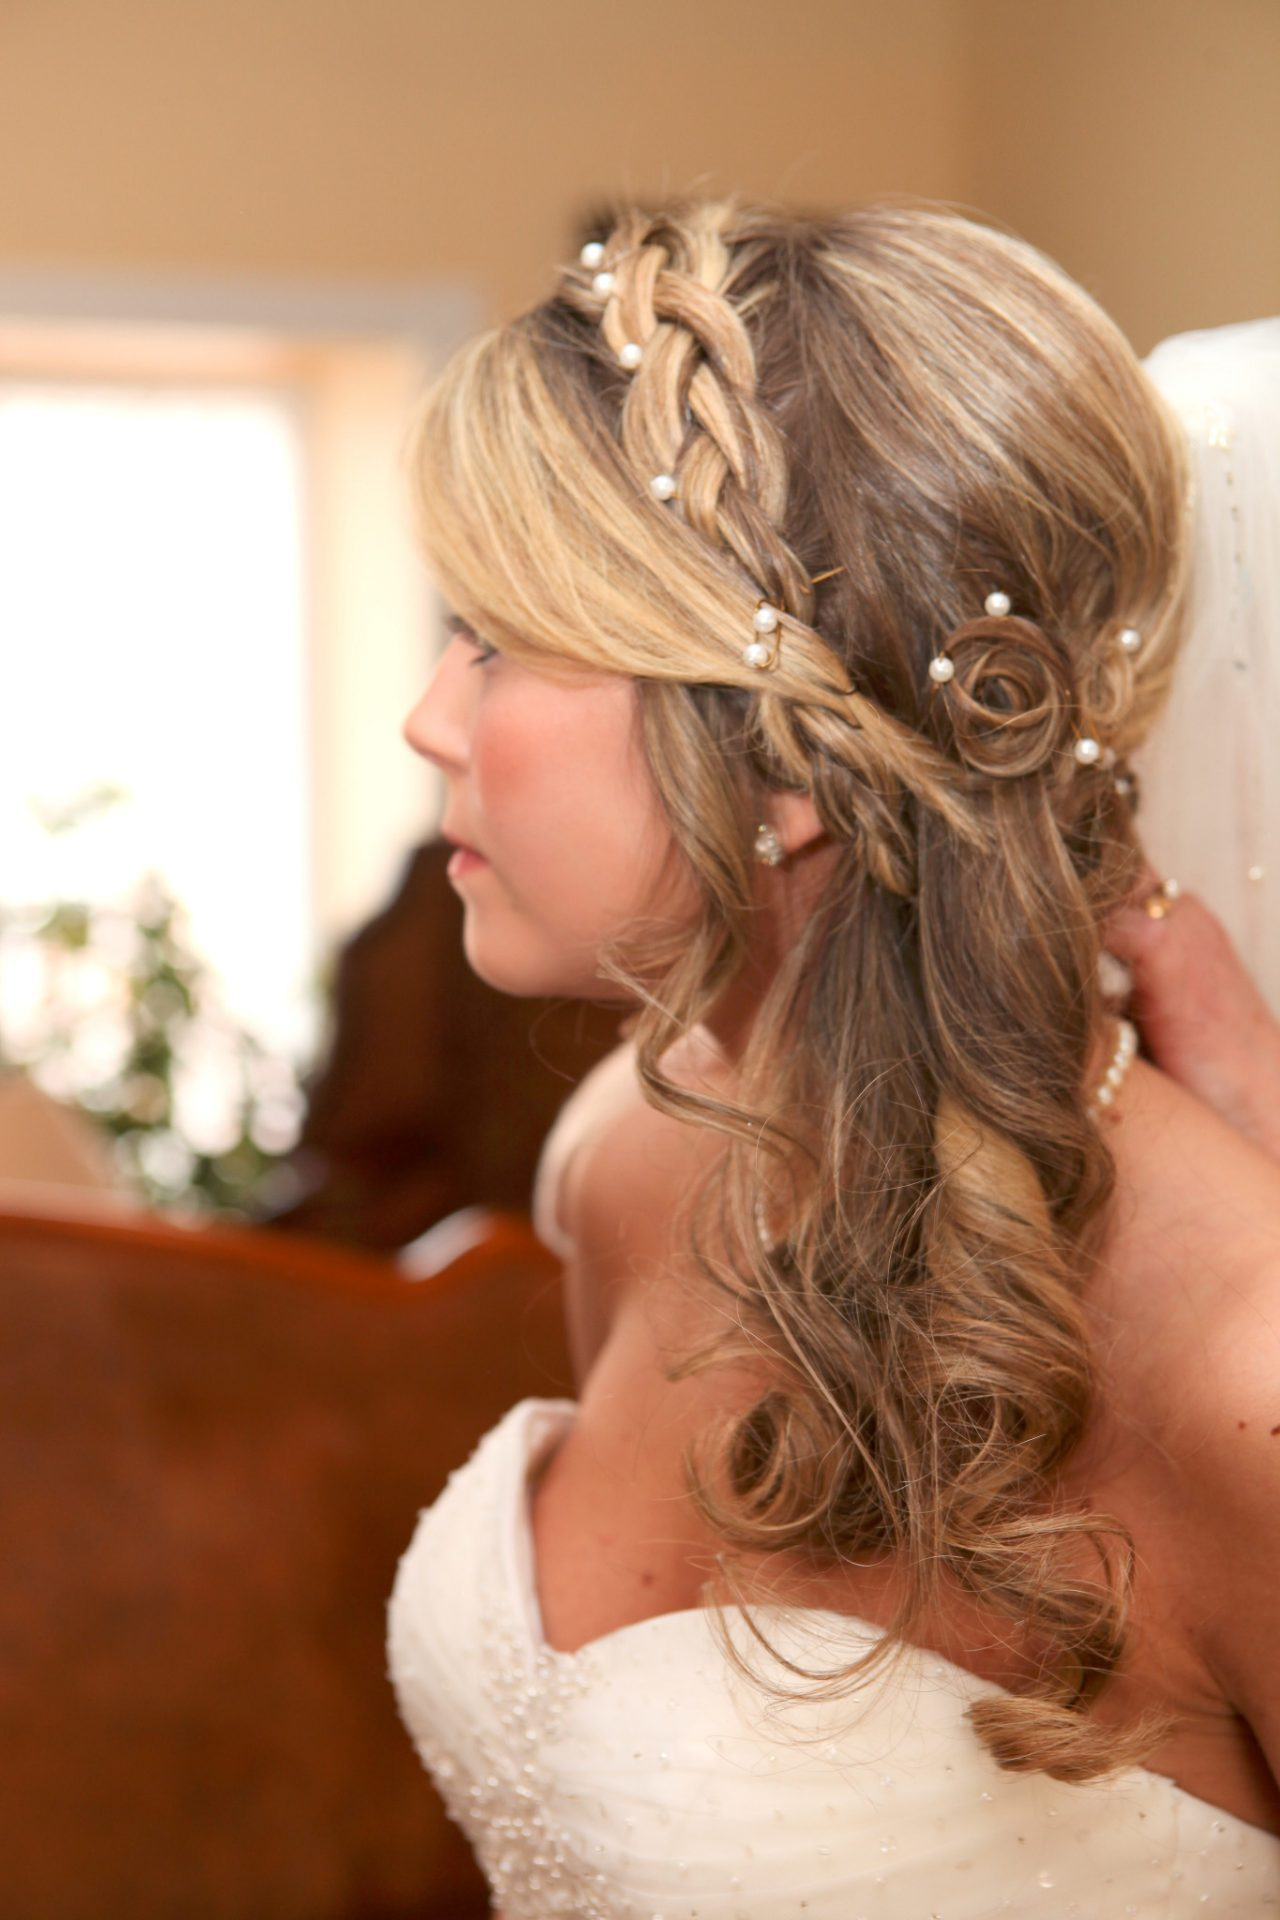 Bride's hair style with light curls and braids